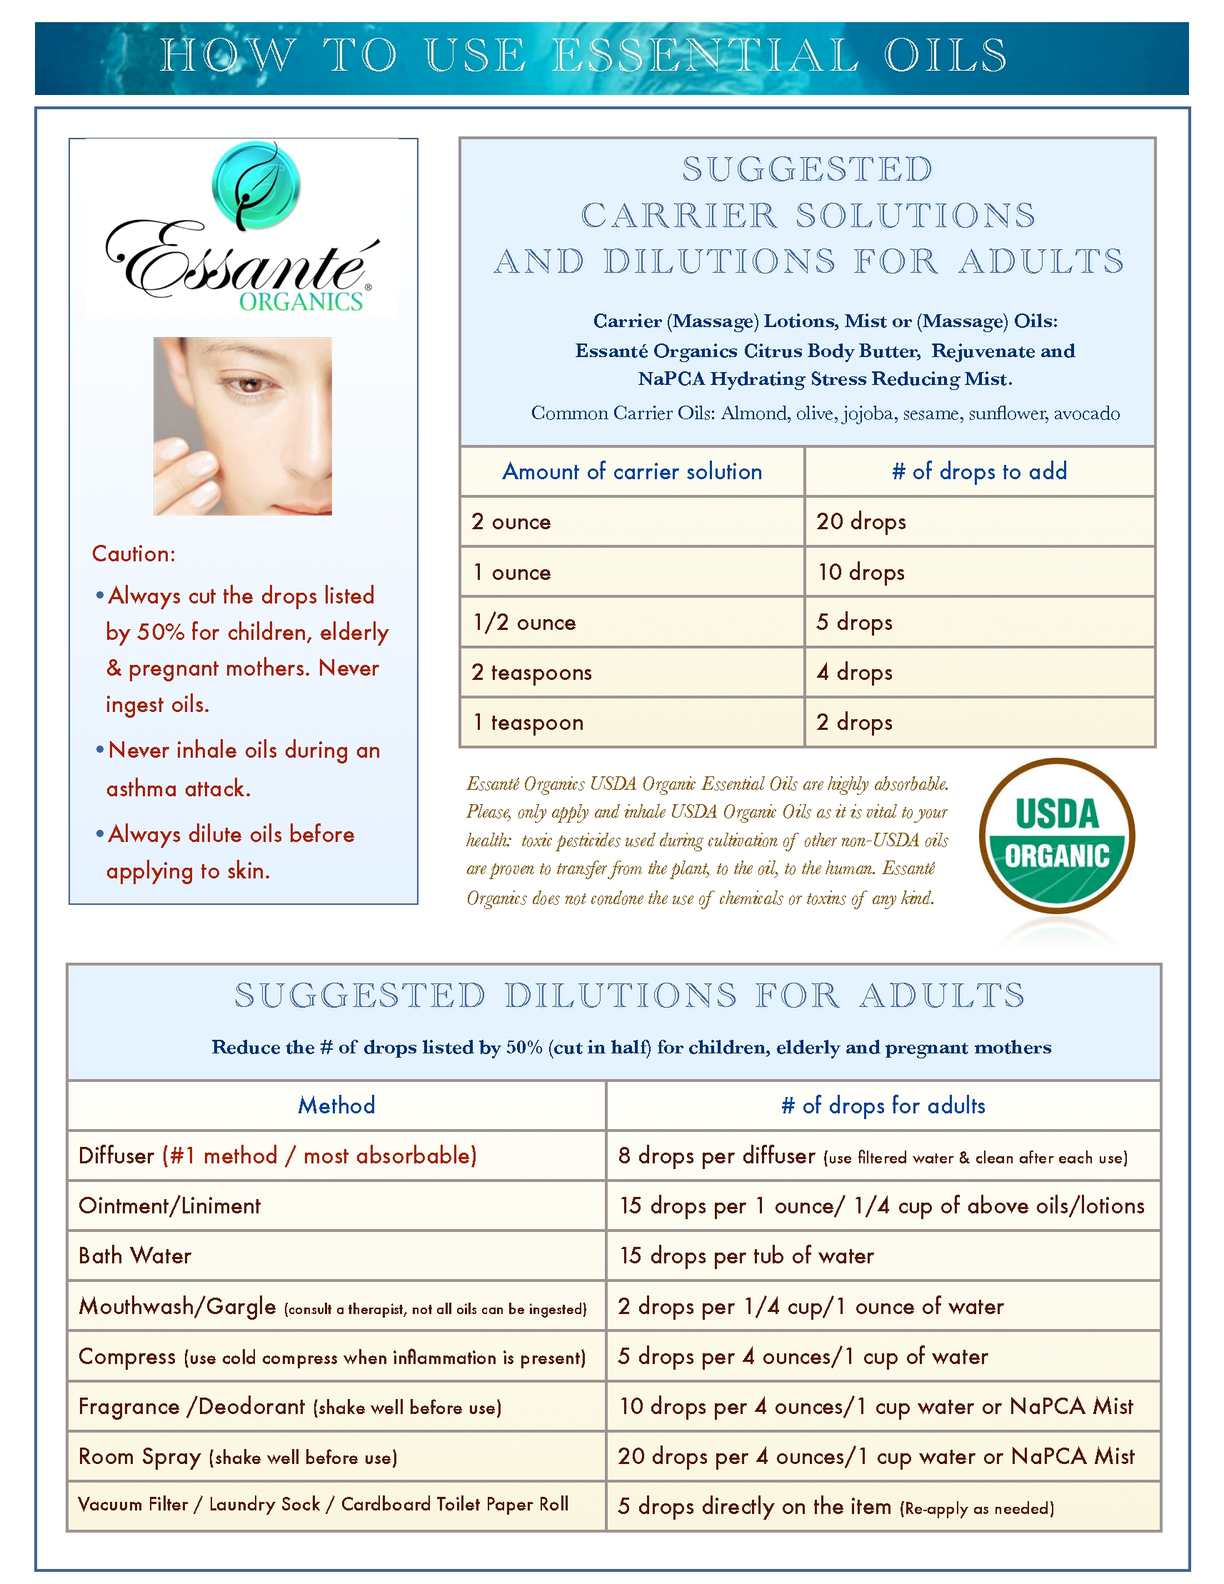 Calaméo - All about Essential Oils an E-Guide by G